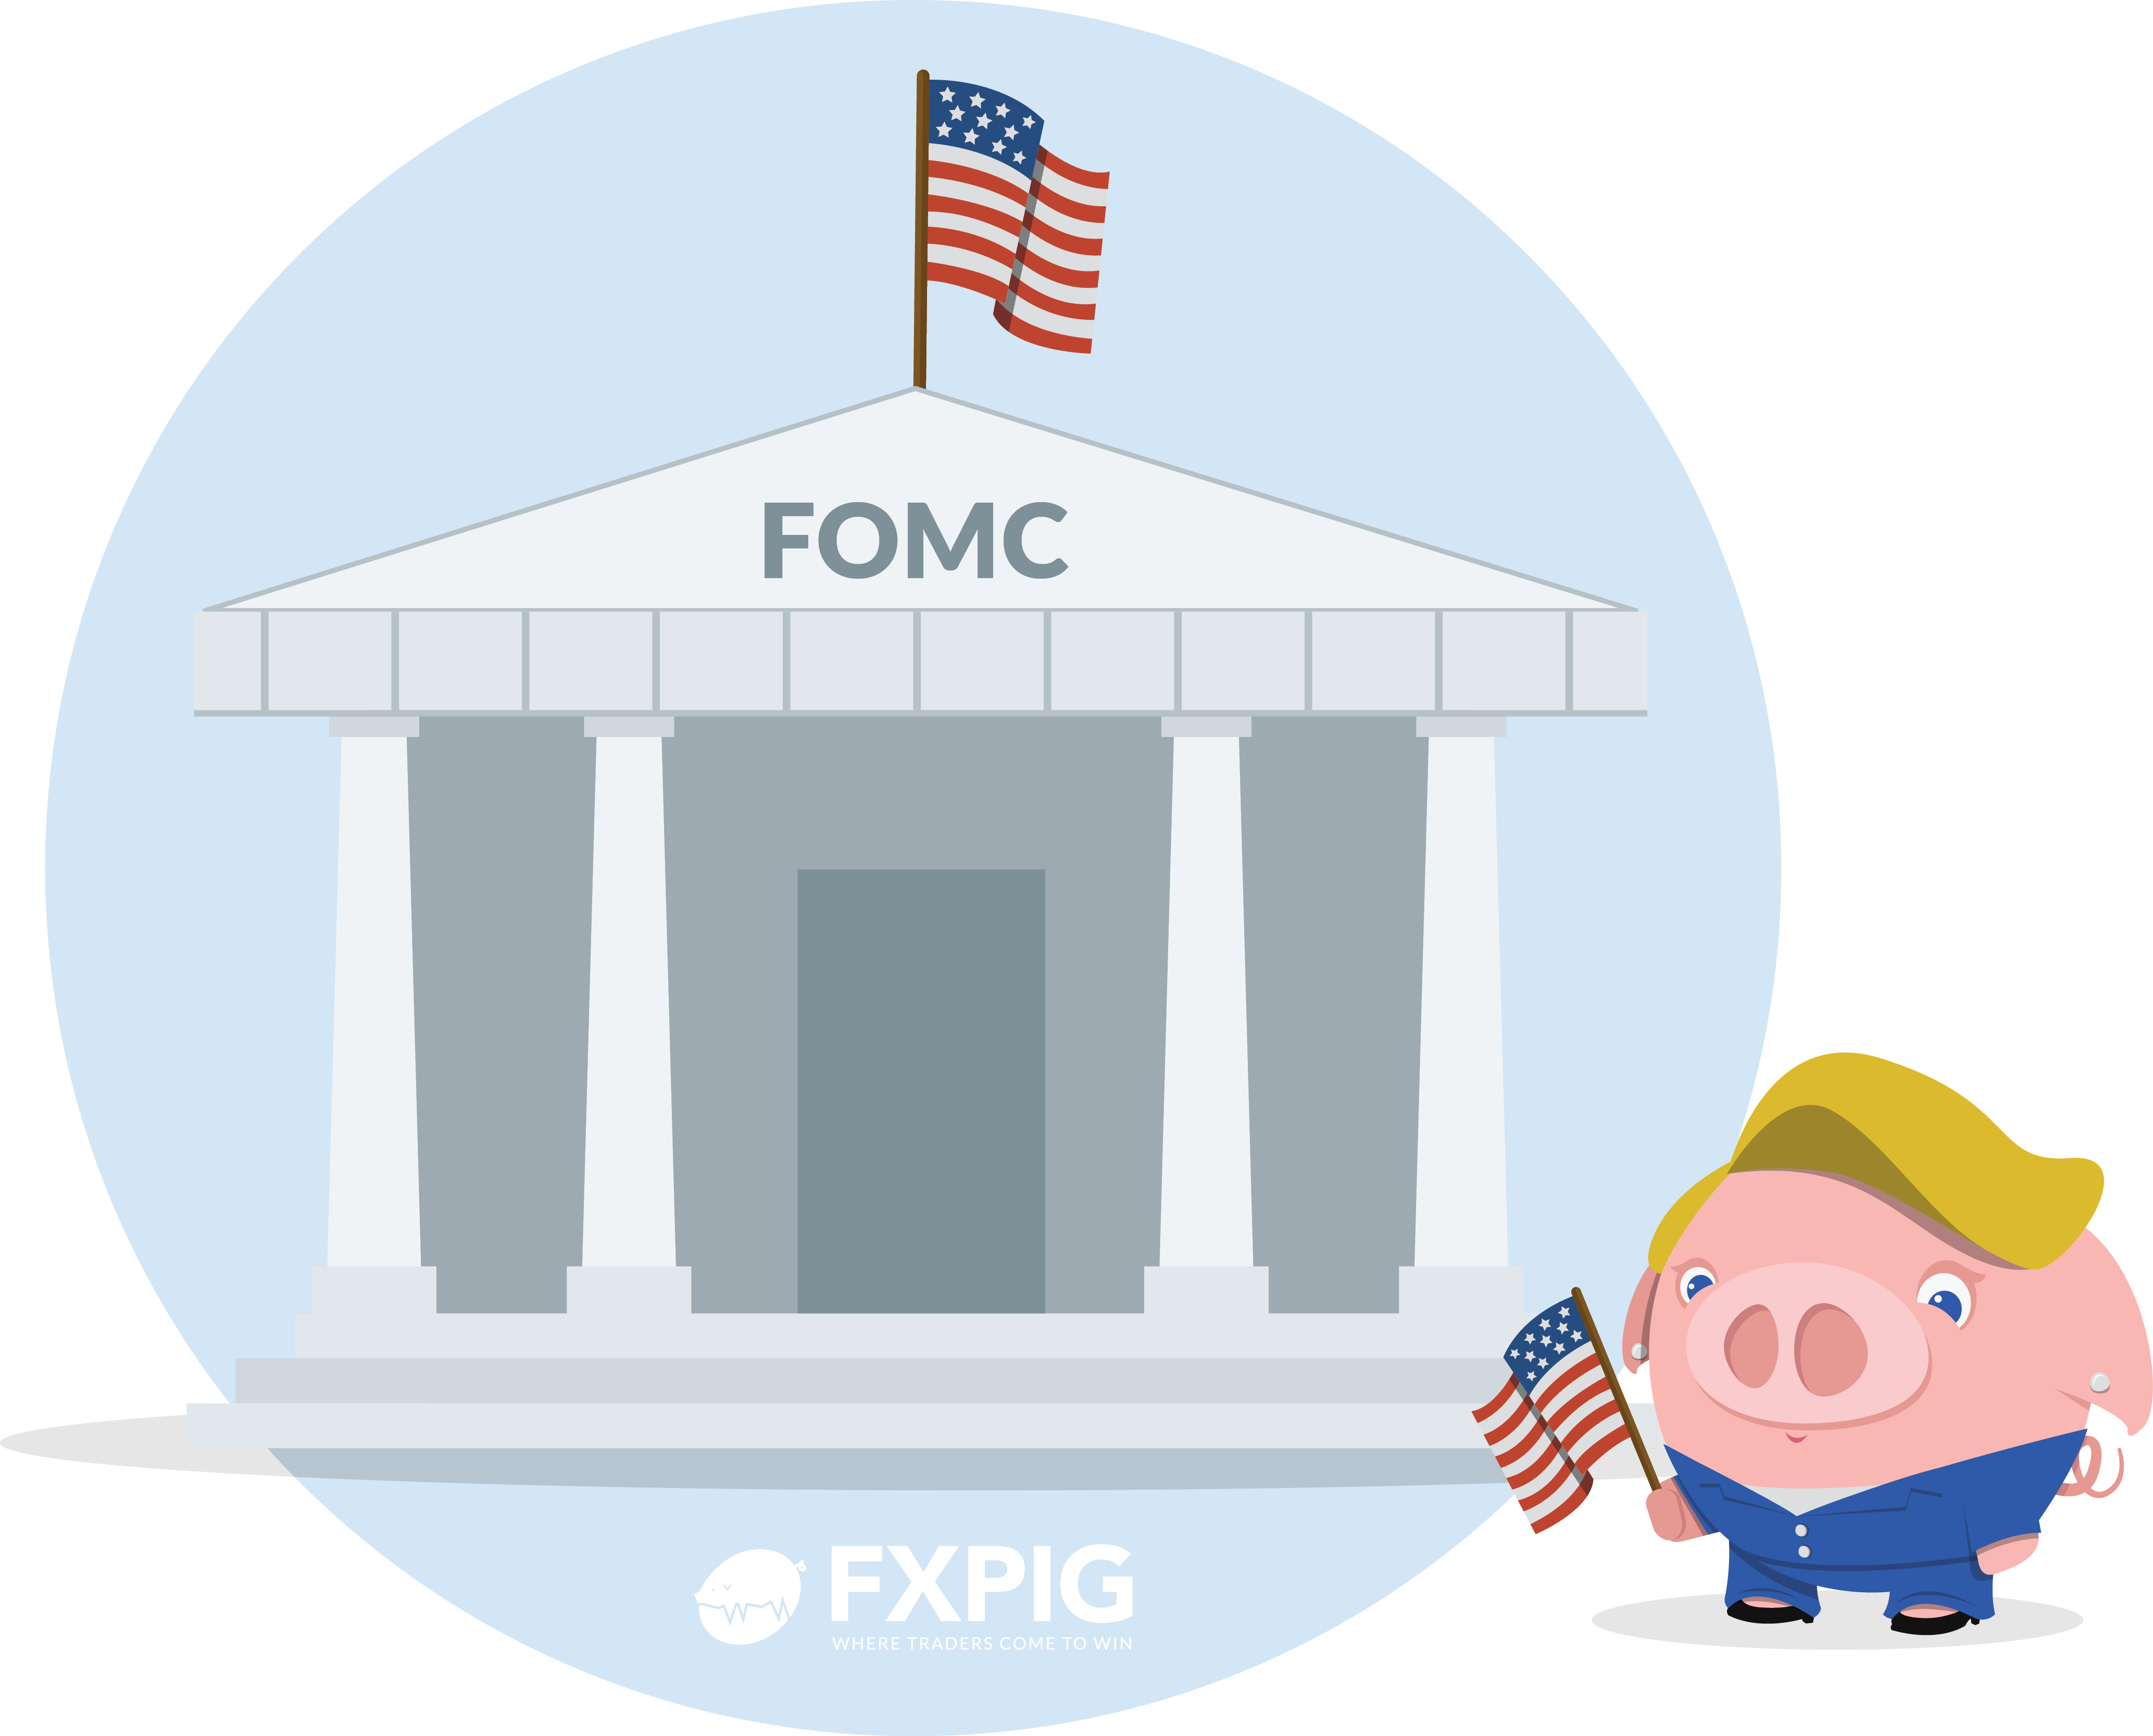 FOREX_TRADING_FX_TRADER_FXPIG_FOMC_hikes